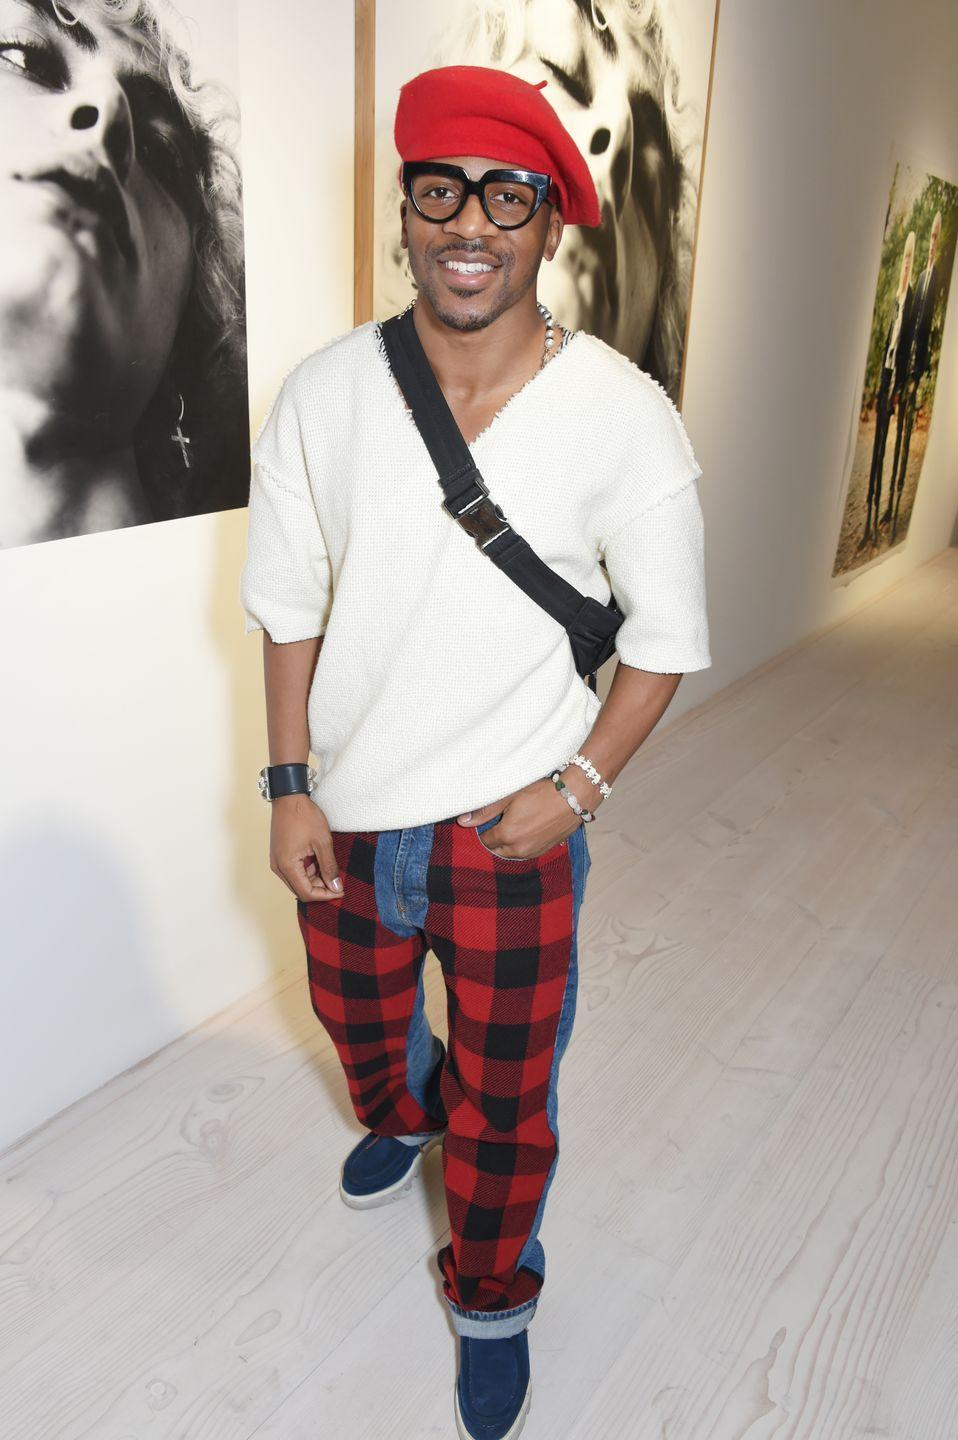 <p><strong>Brand</strong>: Romeo Hunte</p><p>Michelle Obama, Zendaya, Beyoncé, Saweetie, and Keke Palmer have all worn Hunte's designs. His outerwear definitely makes a statement, and he's known for using the buffalo-check pattern in many of his clothes, like on his jeans here. </p>